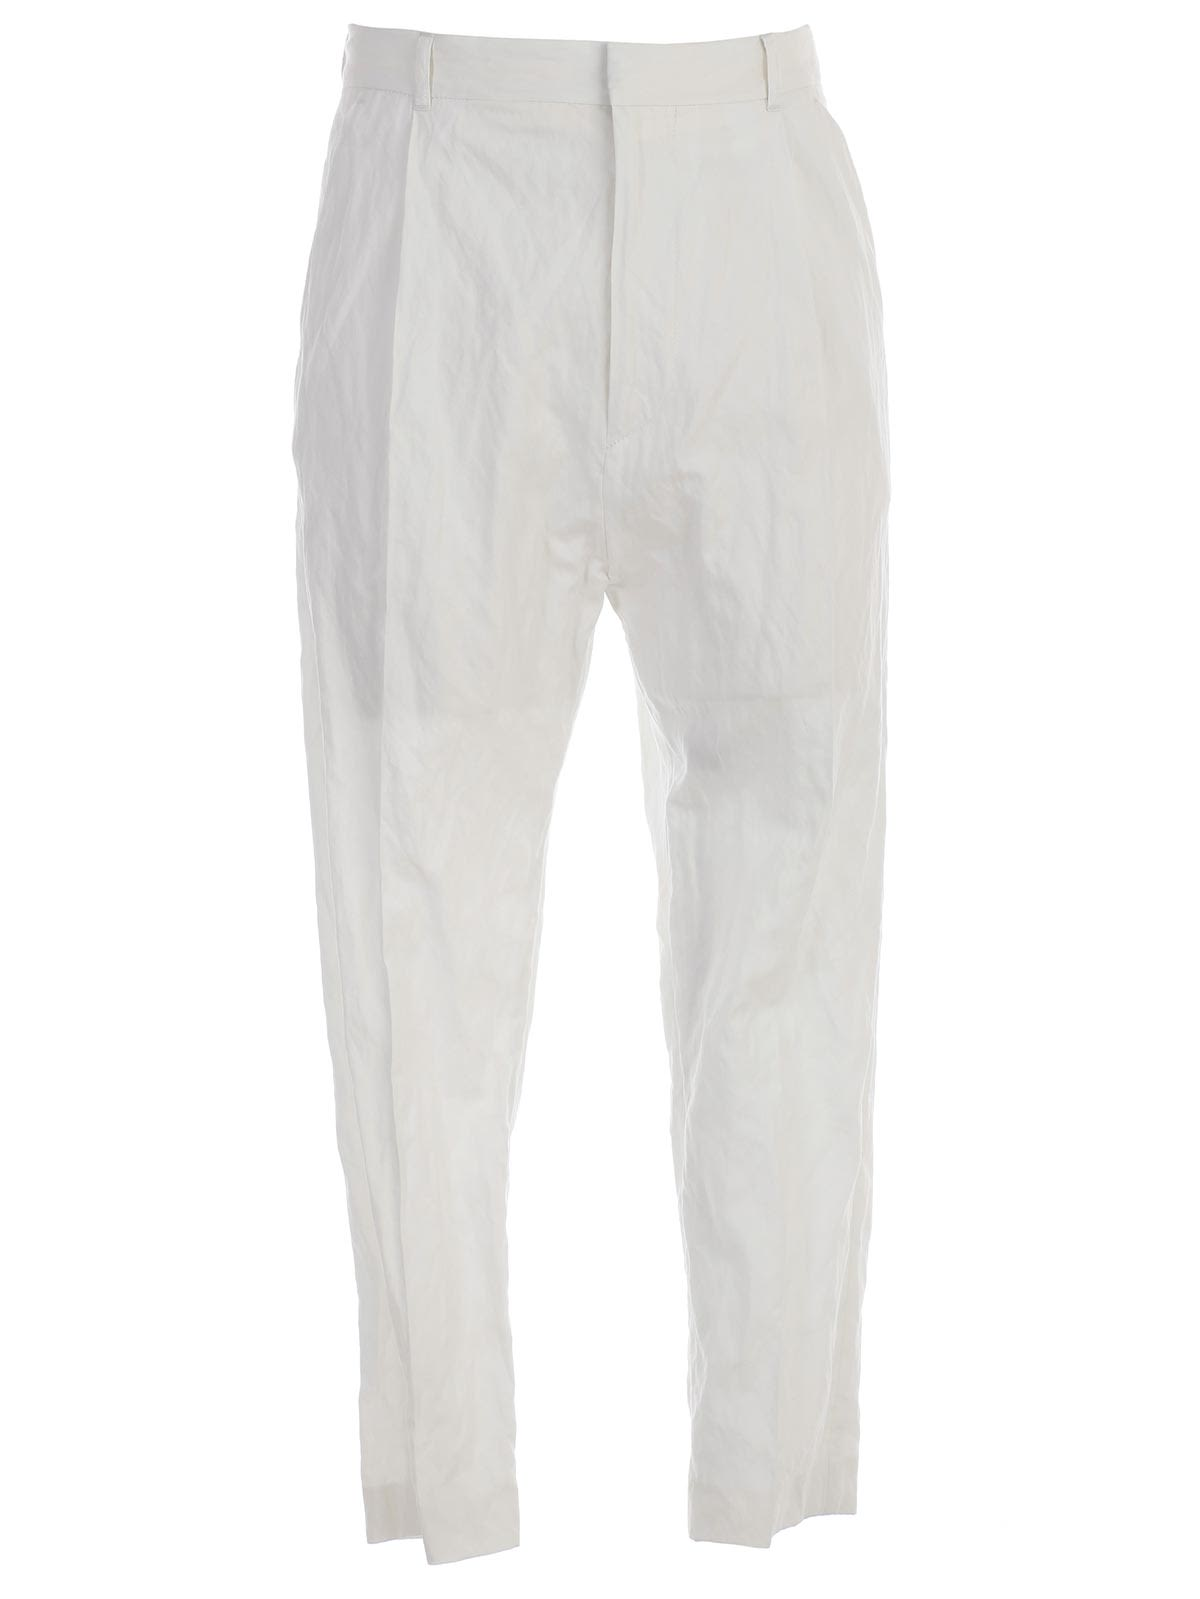 Ann Demeulemeester Grise Trousers